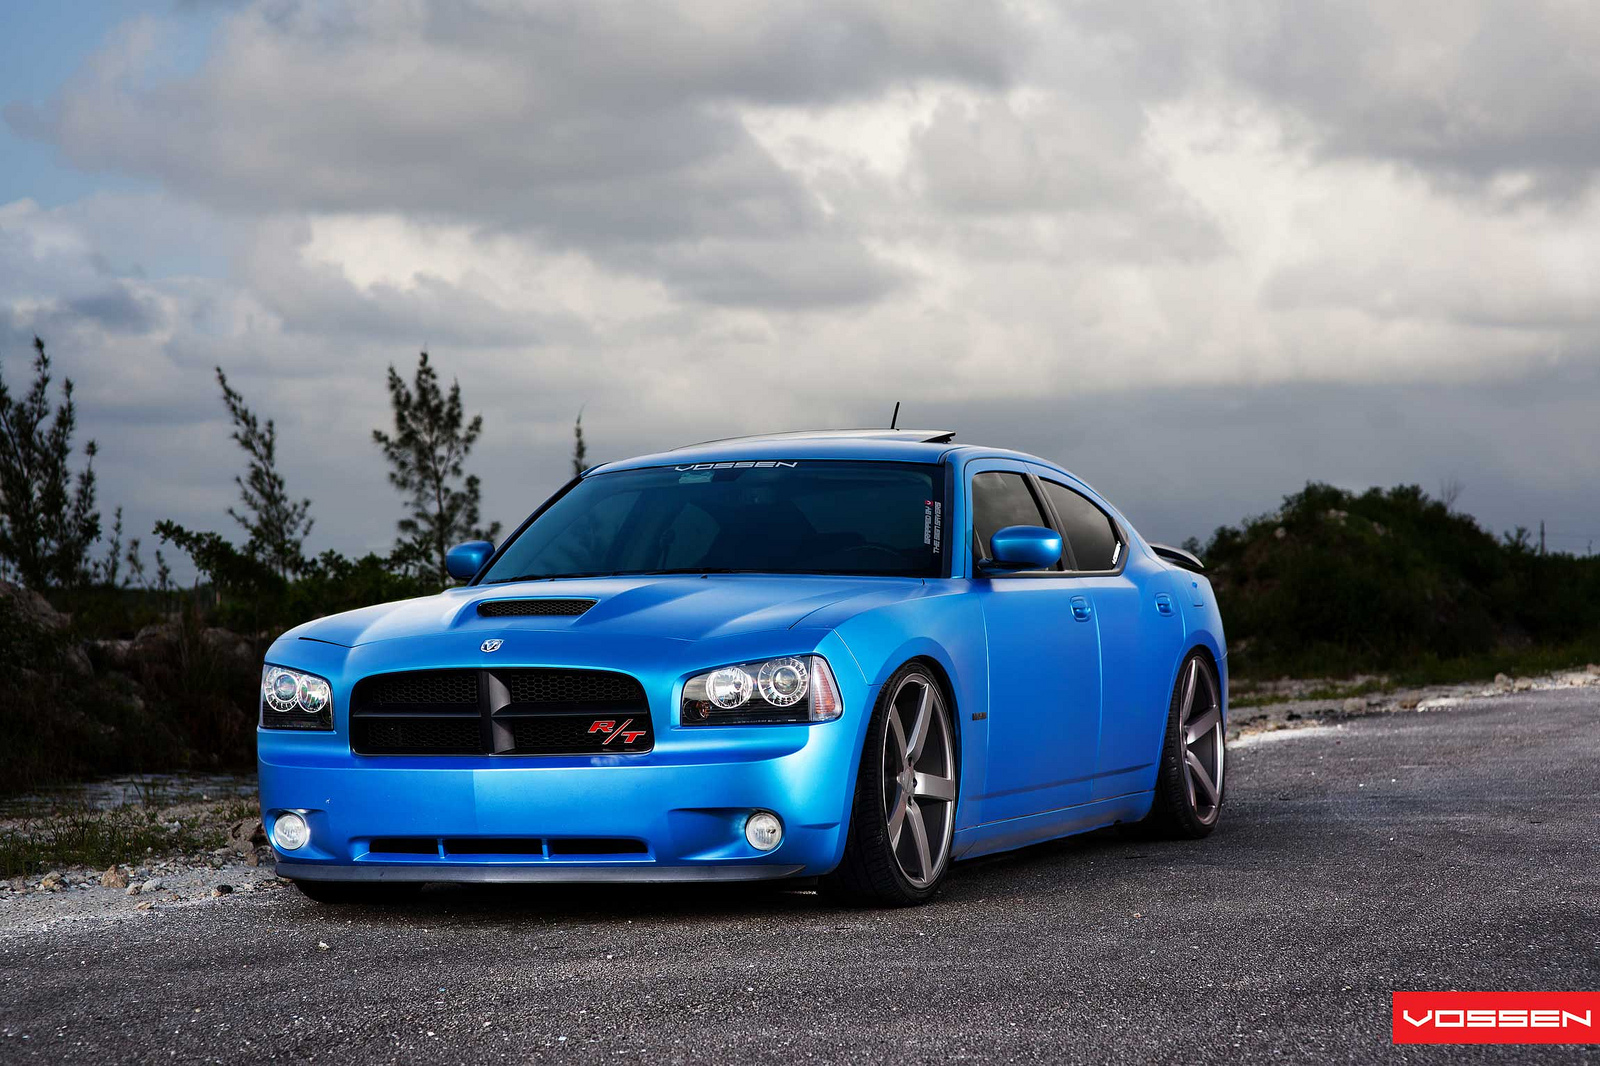 Matte Blue Dodge Charger on Vossen Wheels Is Very Much Alive - autoevolution